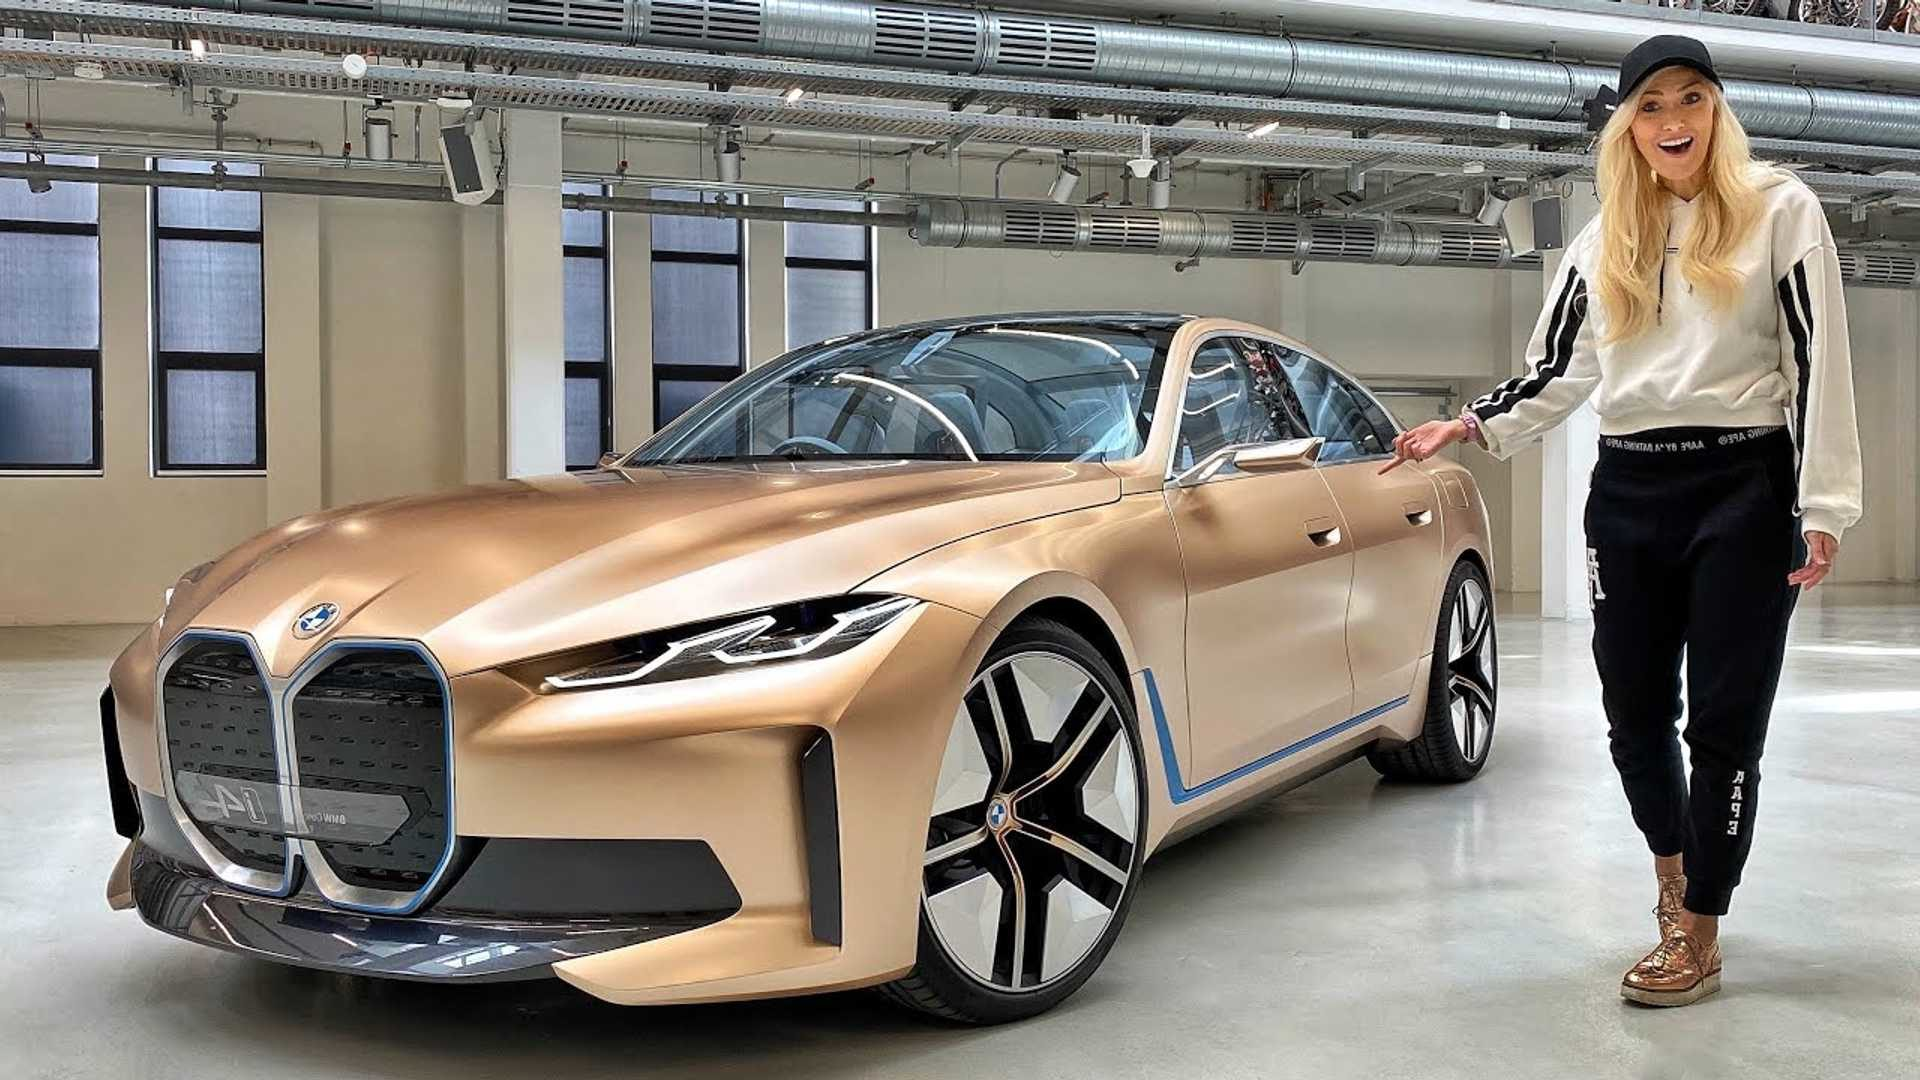 Video That Lets Us Take A Closer Look At The Bmw Concept I4 Like Never Before Somag News